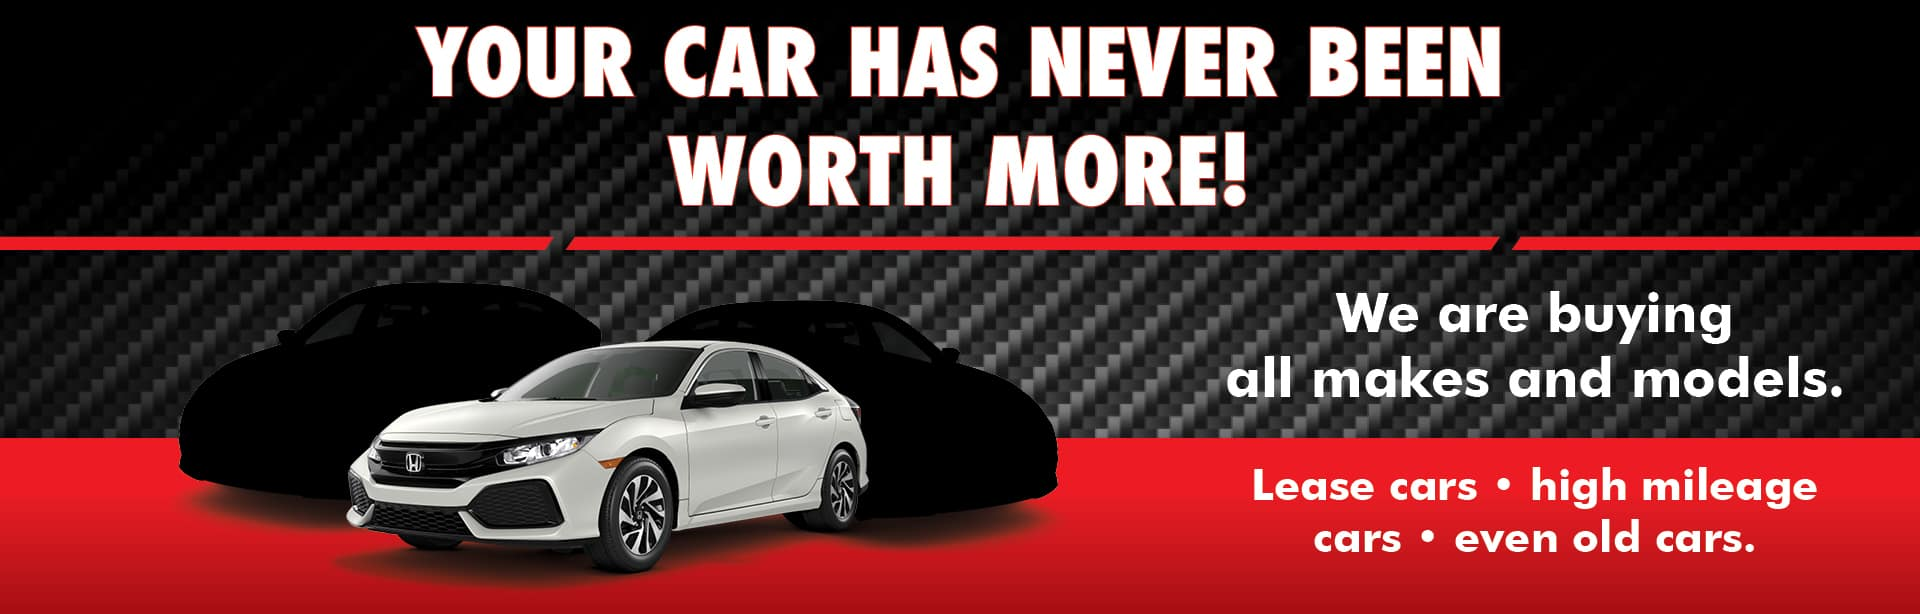 We are buying all makes and models. Lease cars, high mileage cars, even old cars.